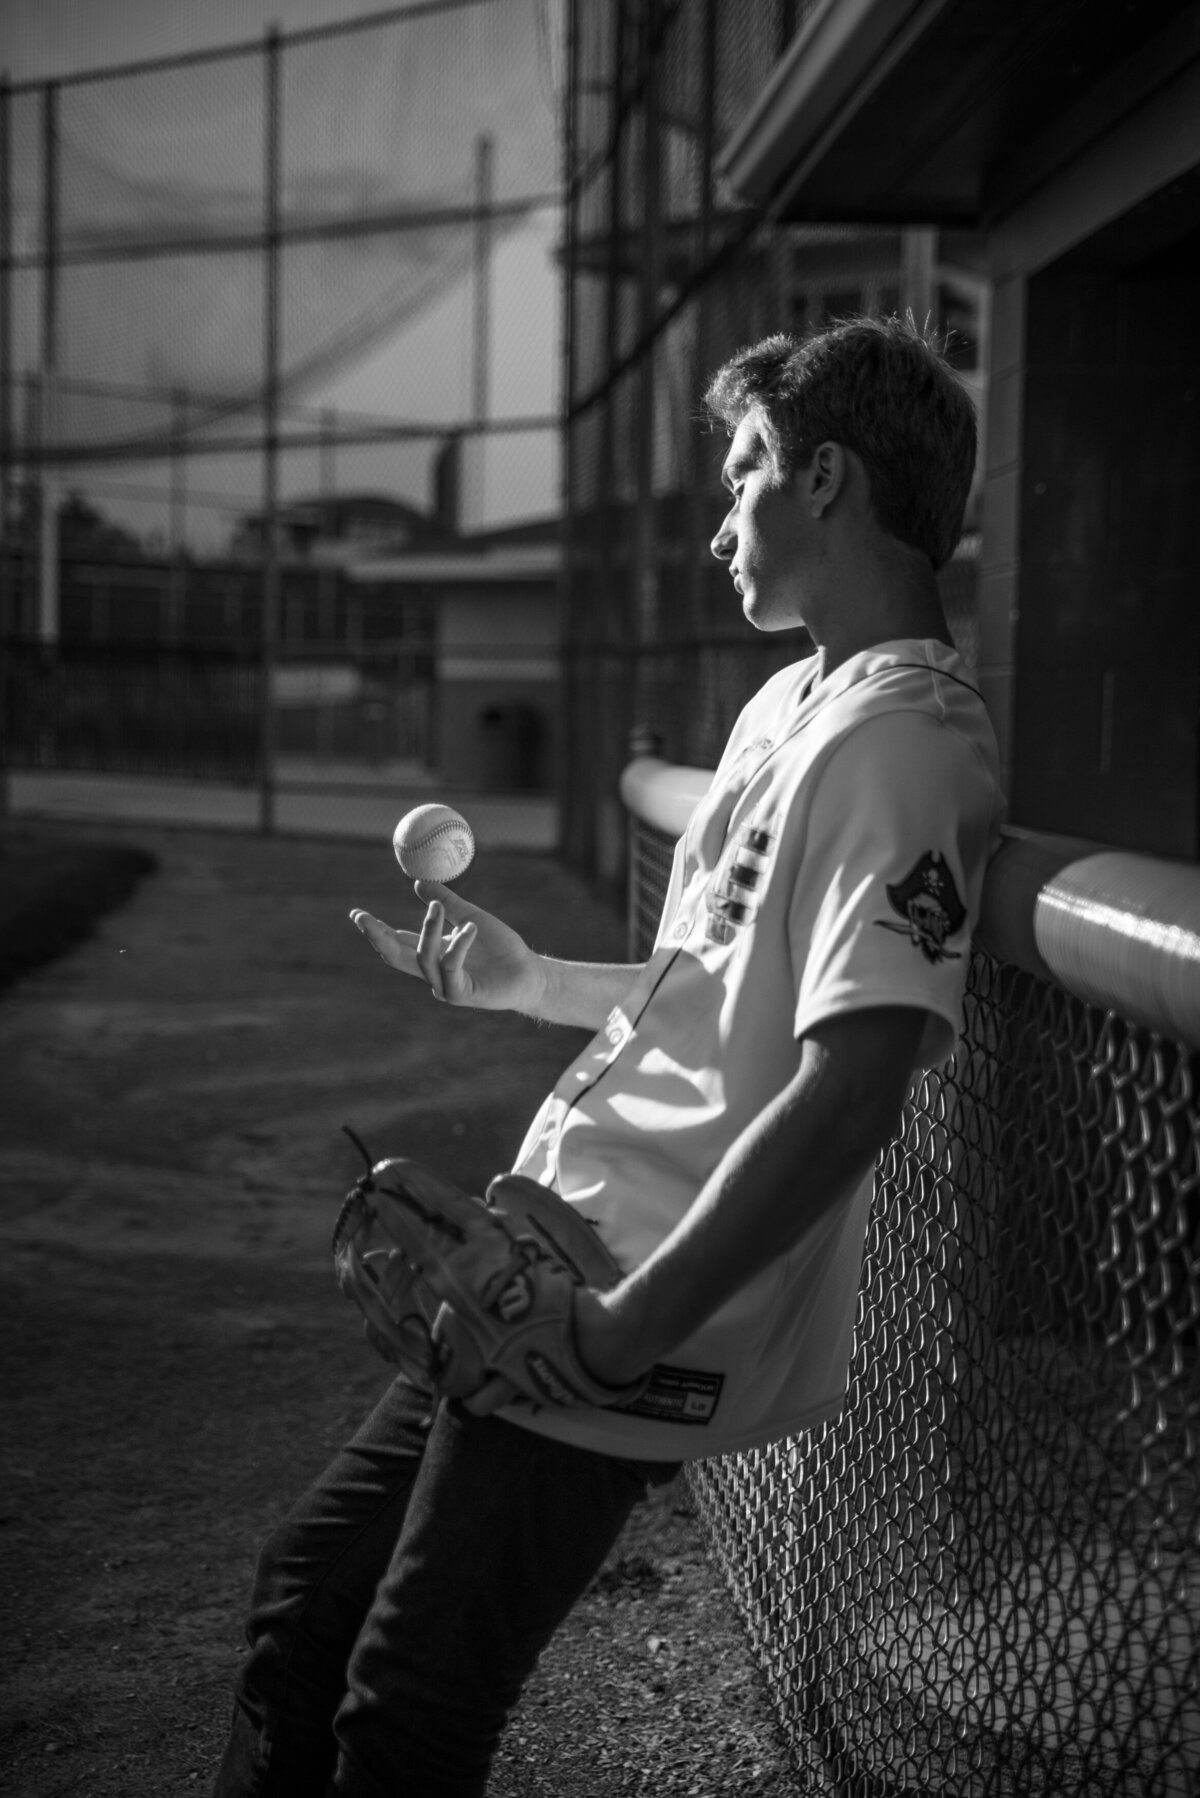 Grand-Rapids-MI-Sports-and-Hobbies-Senior-Pictures-24